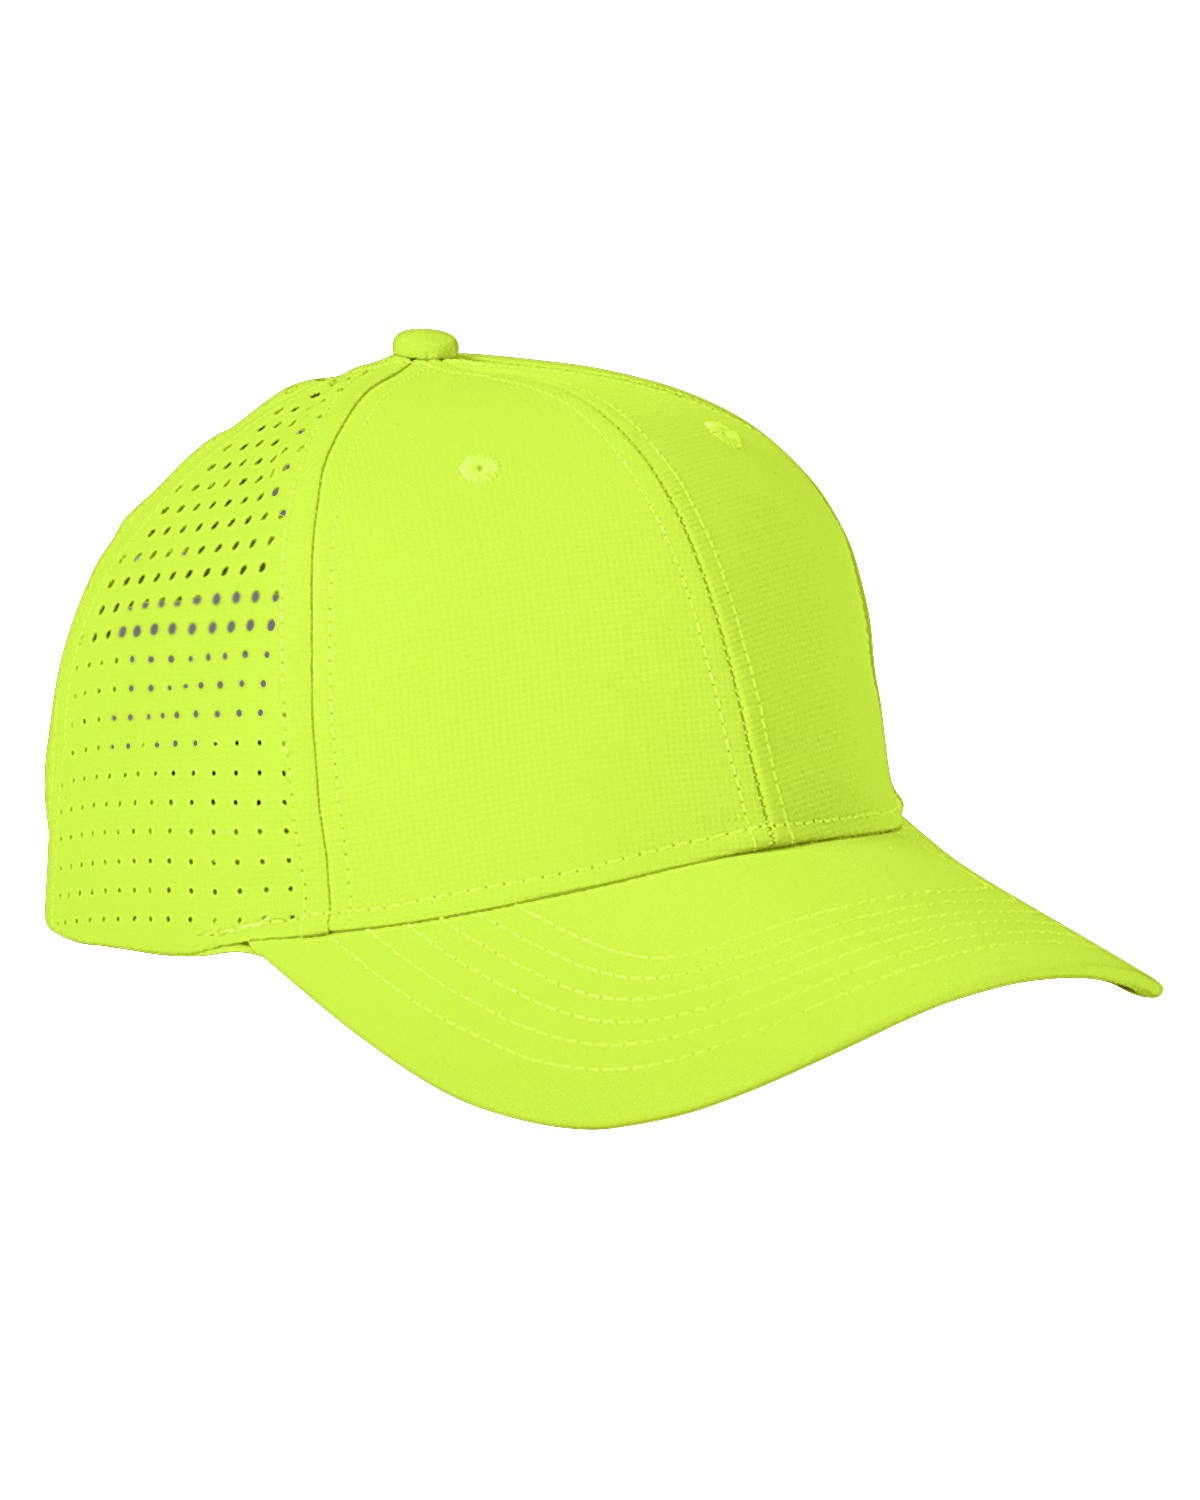 BA537 Big Accessories NEON YELLOW